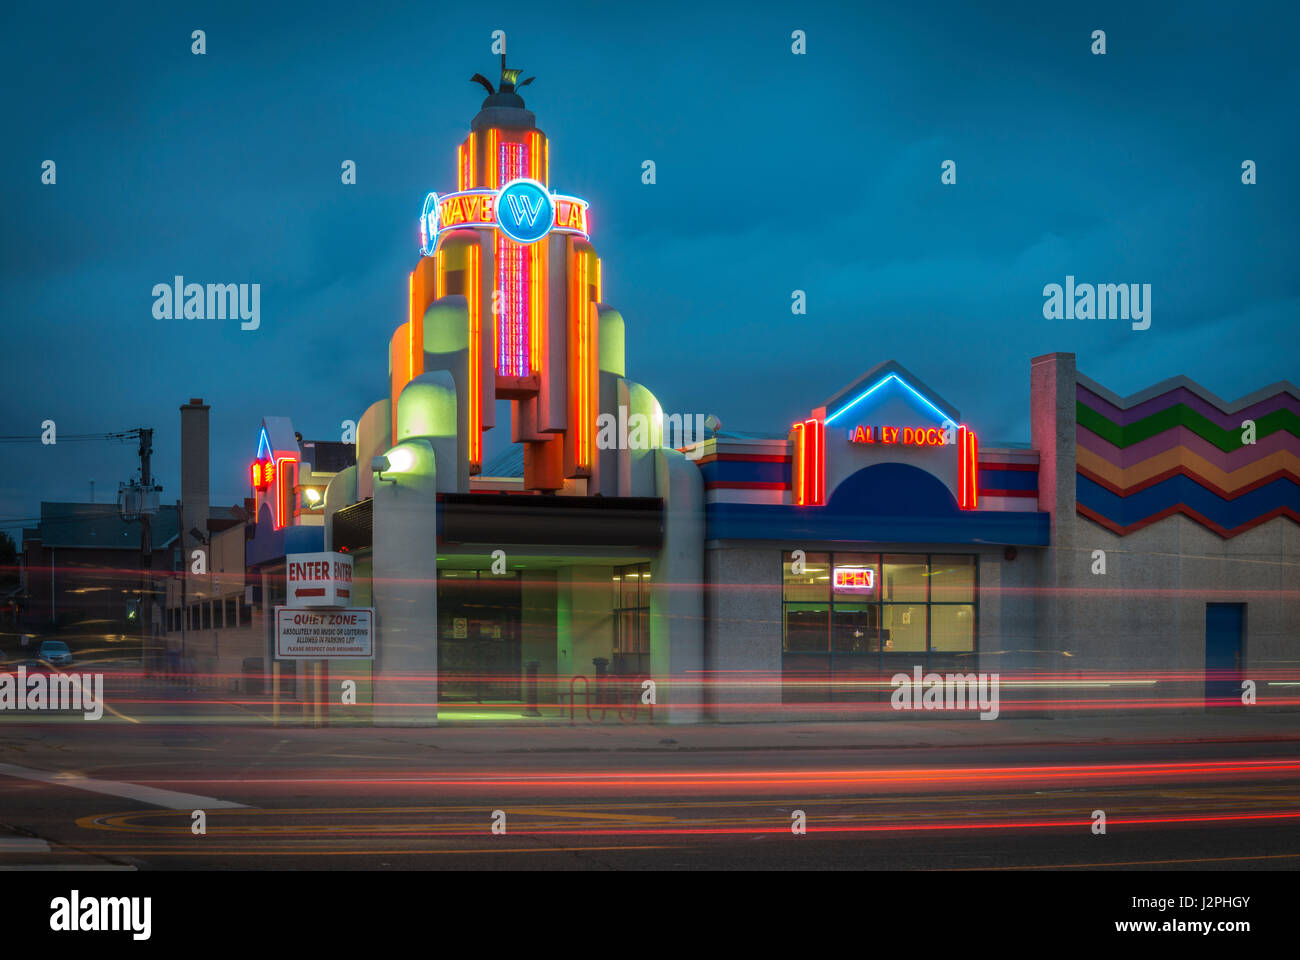 CHICAGO, IL -16 June 2015- Neon sign at Chicago's Landmark Waveland Bowling Alley accentuated with lights of - Stock Image